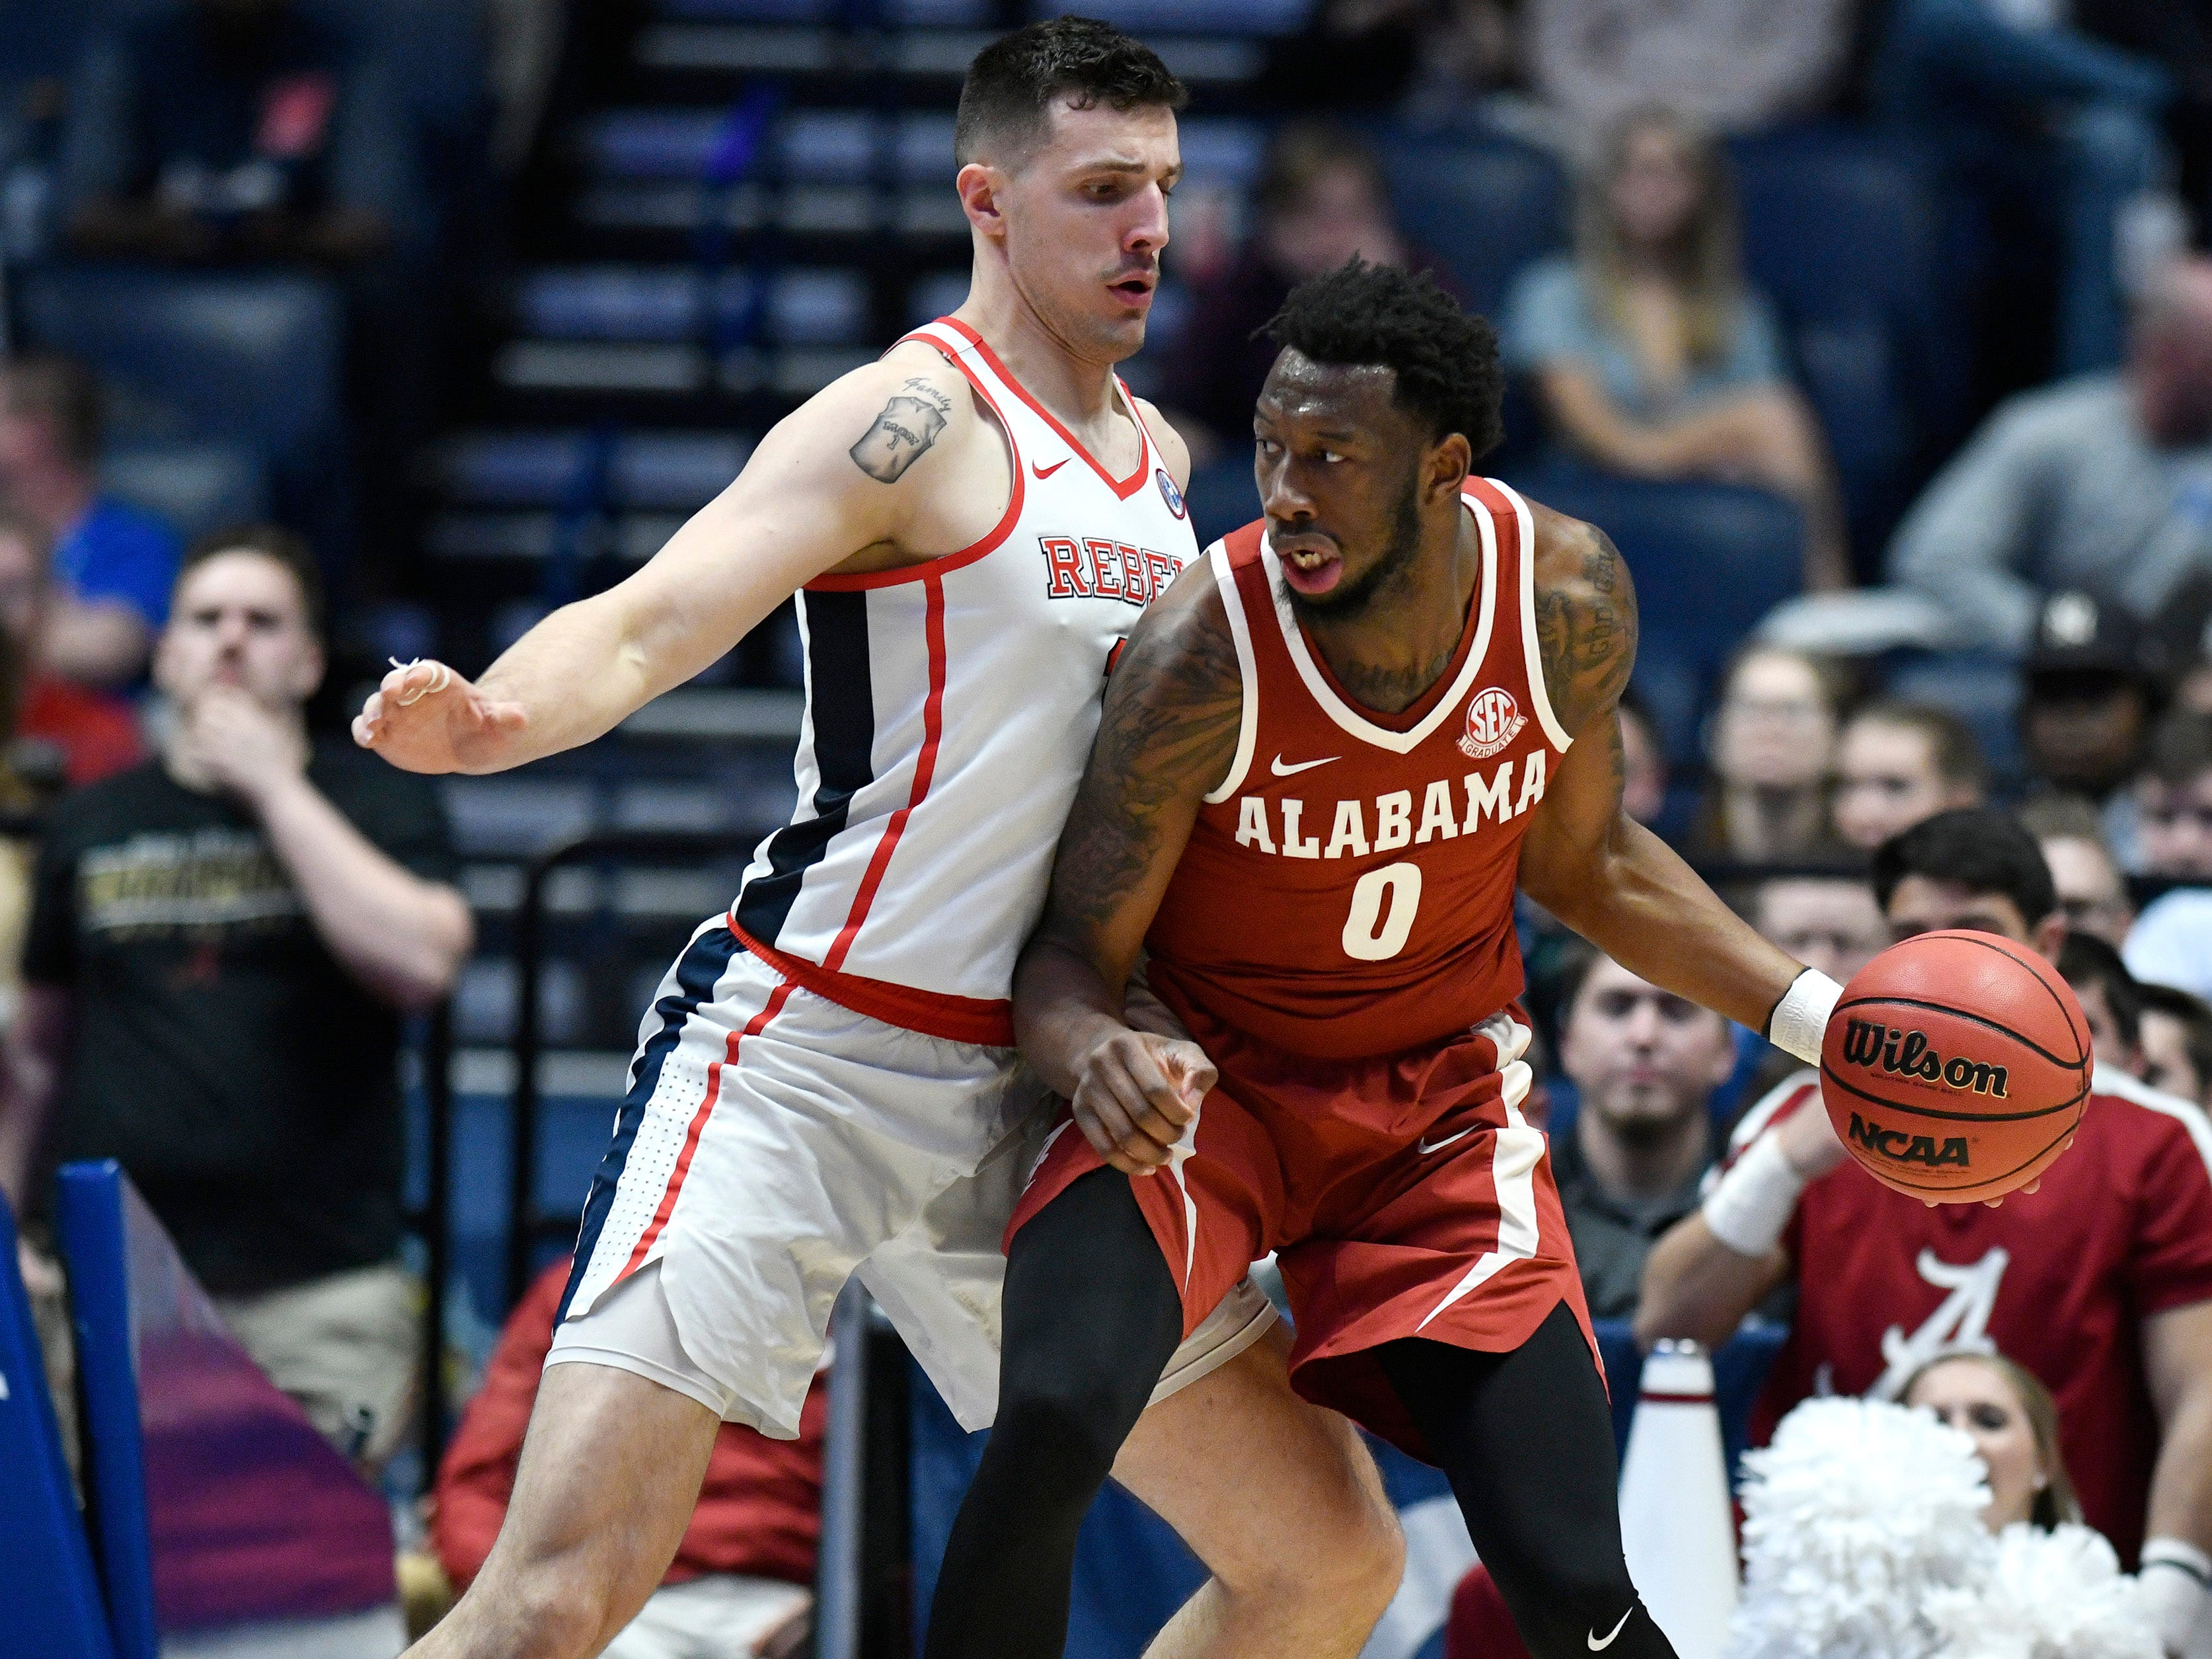 Alabama forward Donta Hall (0) moves the ball defended by Ole Miss center Dominik Olejniczak (13) during the second half of the SEC Men's Basketball Tournament game at Bridgestone Arena in Nashville, Tenn., Thursday, March 14, 2019.